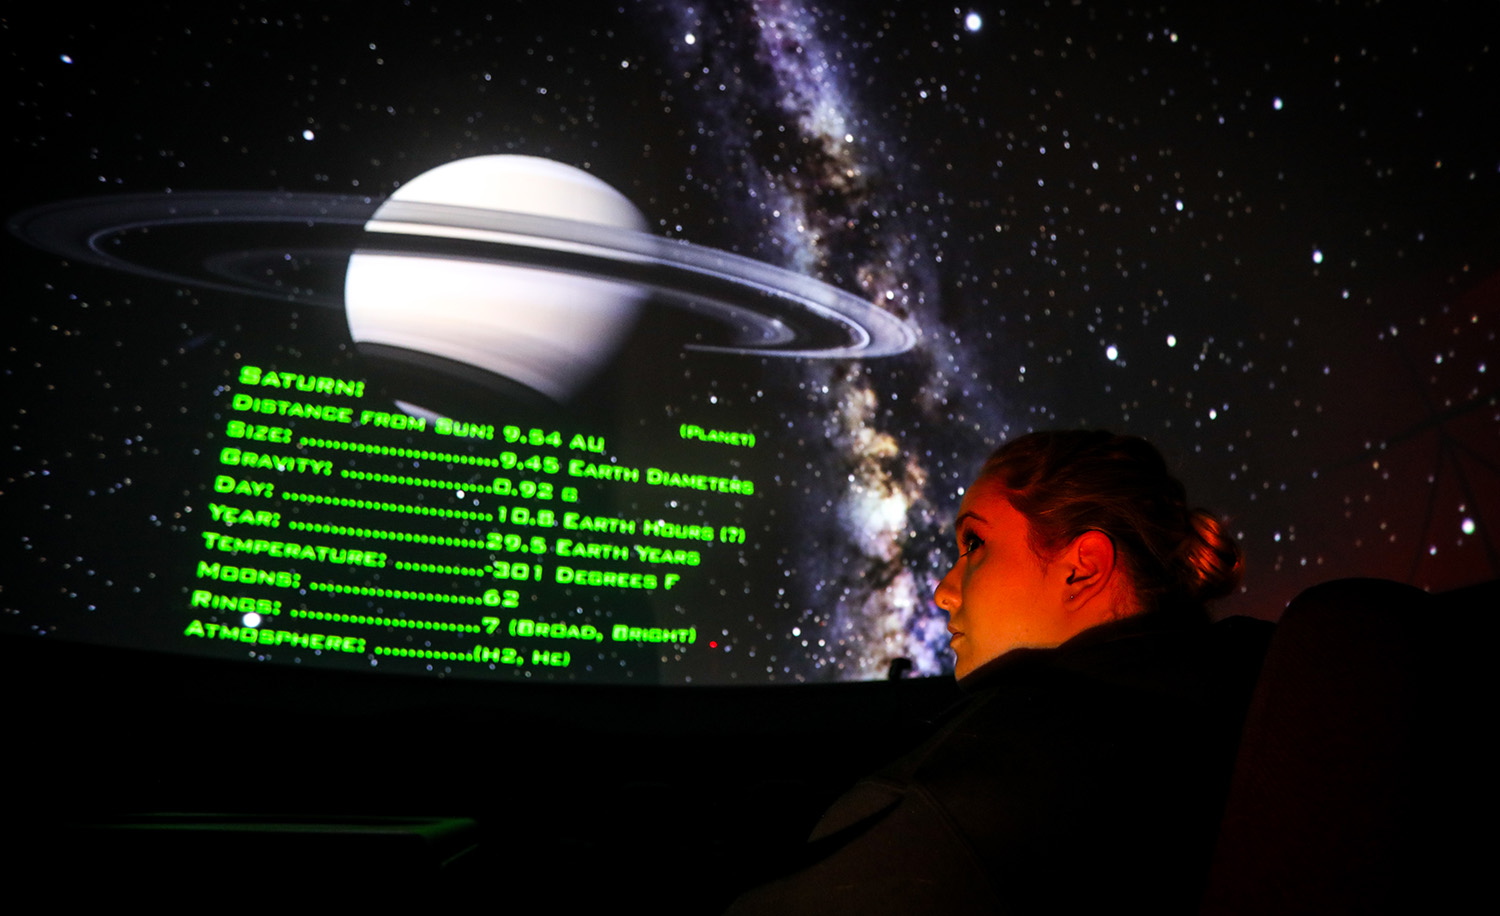 Santa Fe College students learn about constellations and planets during an Astronomy class at the Kika Silva Pla Planetarium on Tuesday, Oct. 3, 2017 in Gainesville, Fla. (photo by Matt Stamey/Santa Fe College) ***Subjects have Releases***